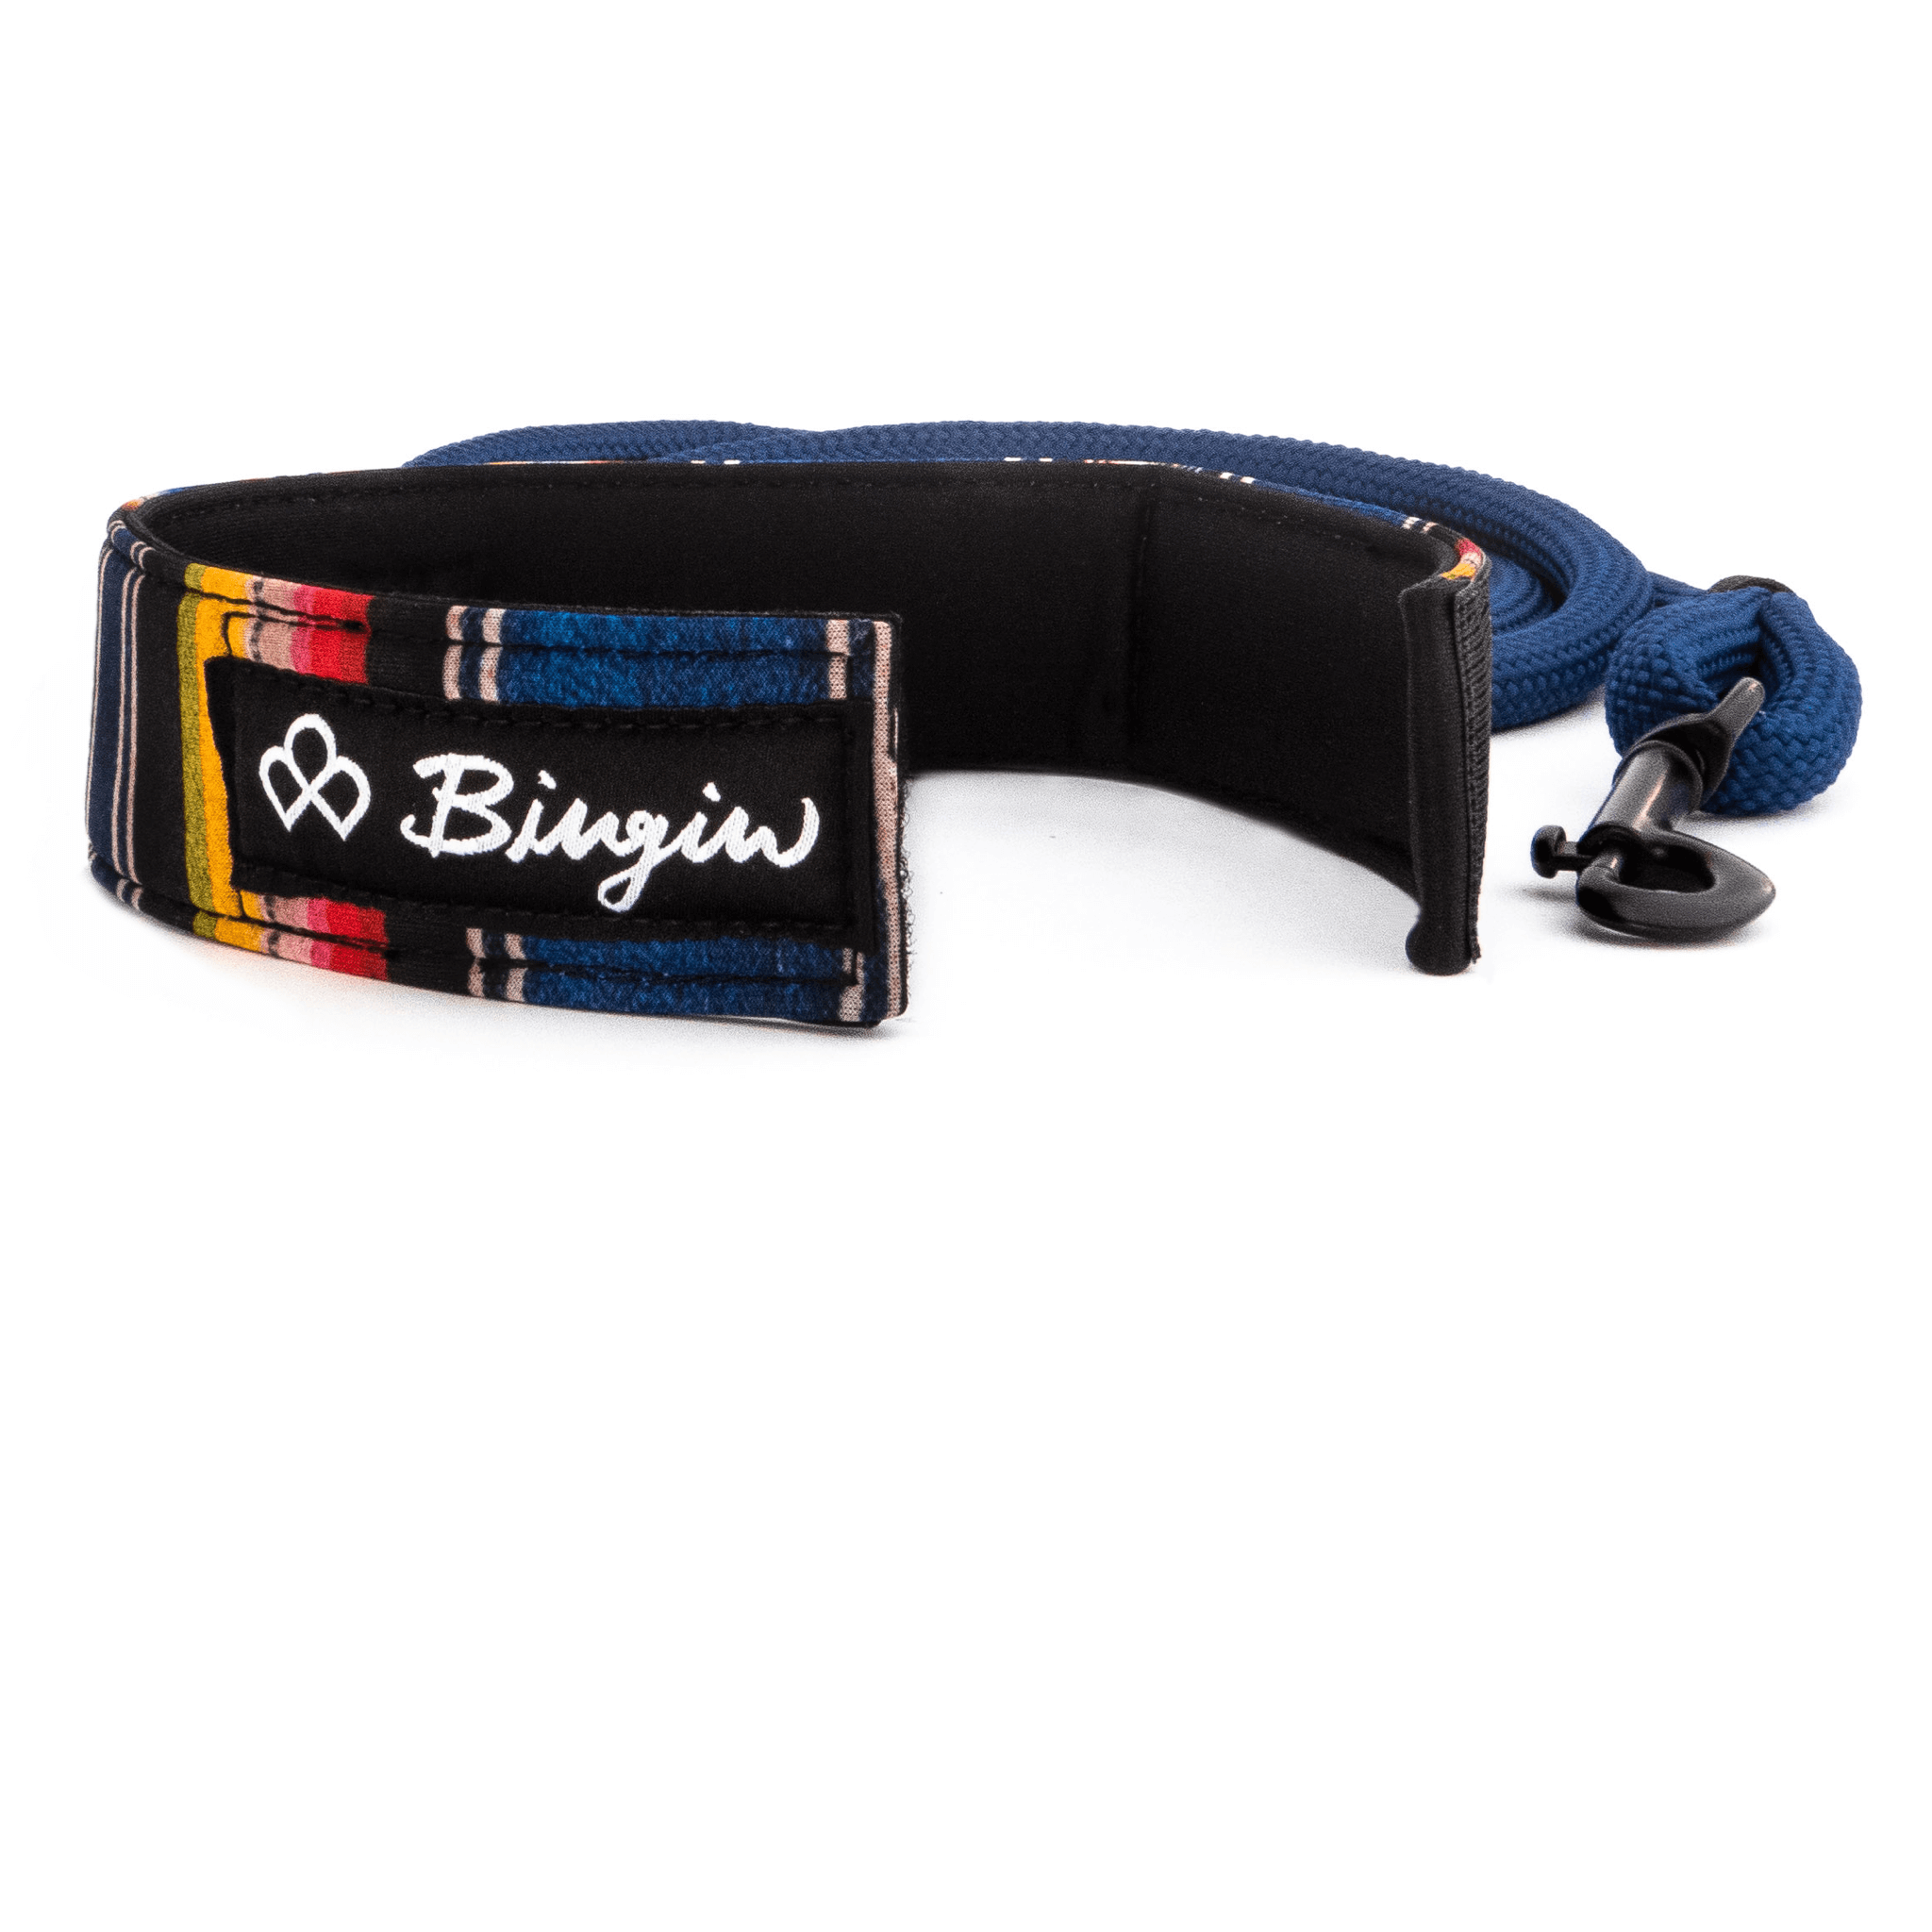 Bingin Dog 'Los Amigos' serape surf-style rope dog leash shown with velcro cuff leash handle opened.